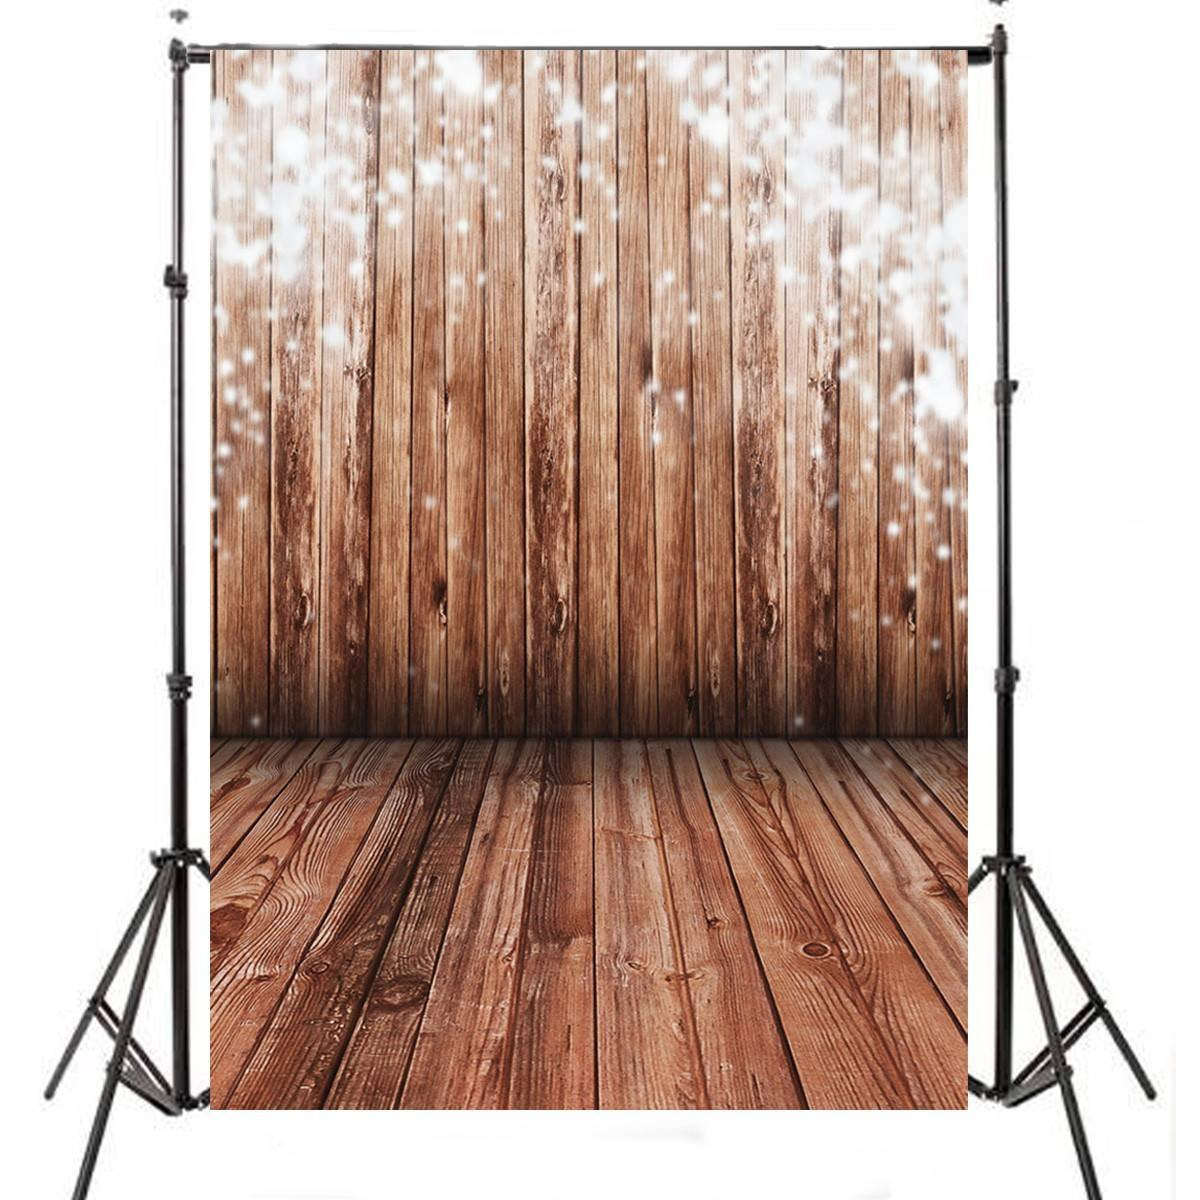 5x7FT Wood Wall Vinyl Photography Backdrop Photo Background Studio Props High Quality New Best Price huayi 10x20ft wood letter wall backdrop wood floor vinyl wedding photography backdrops photo props background woods xt 6396